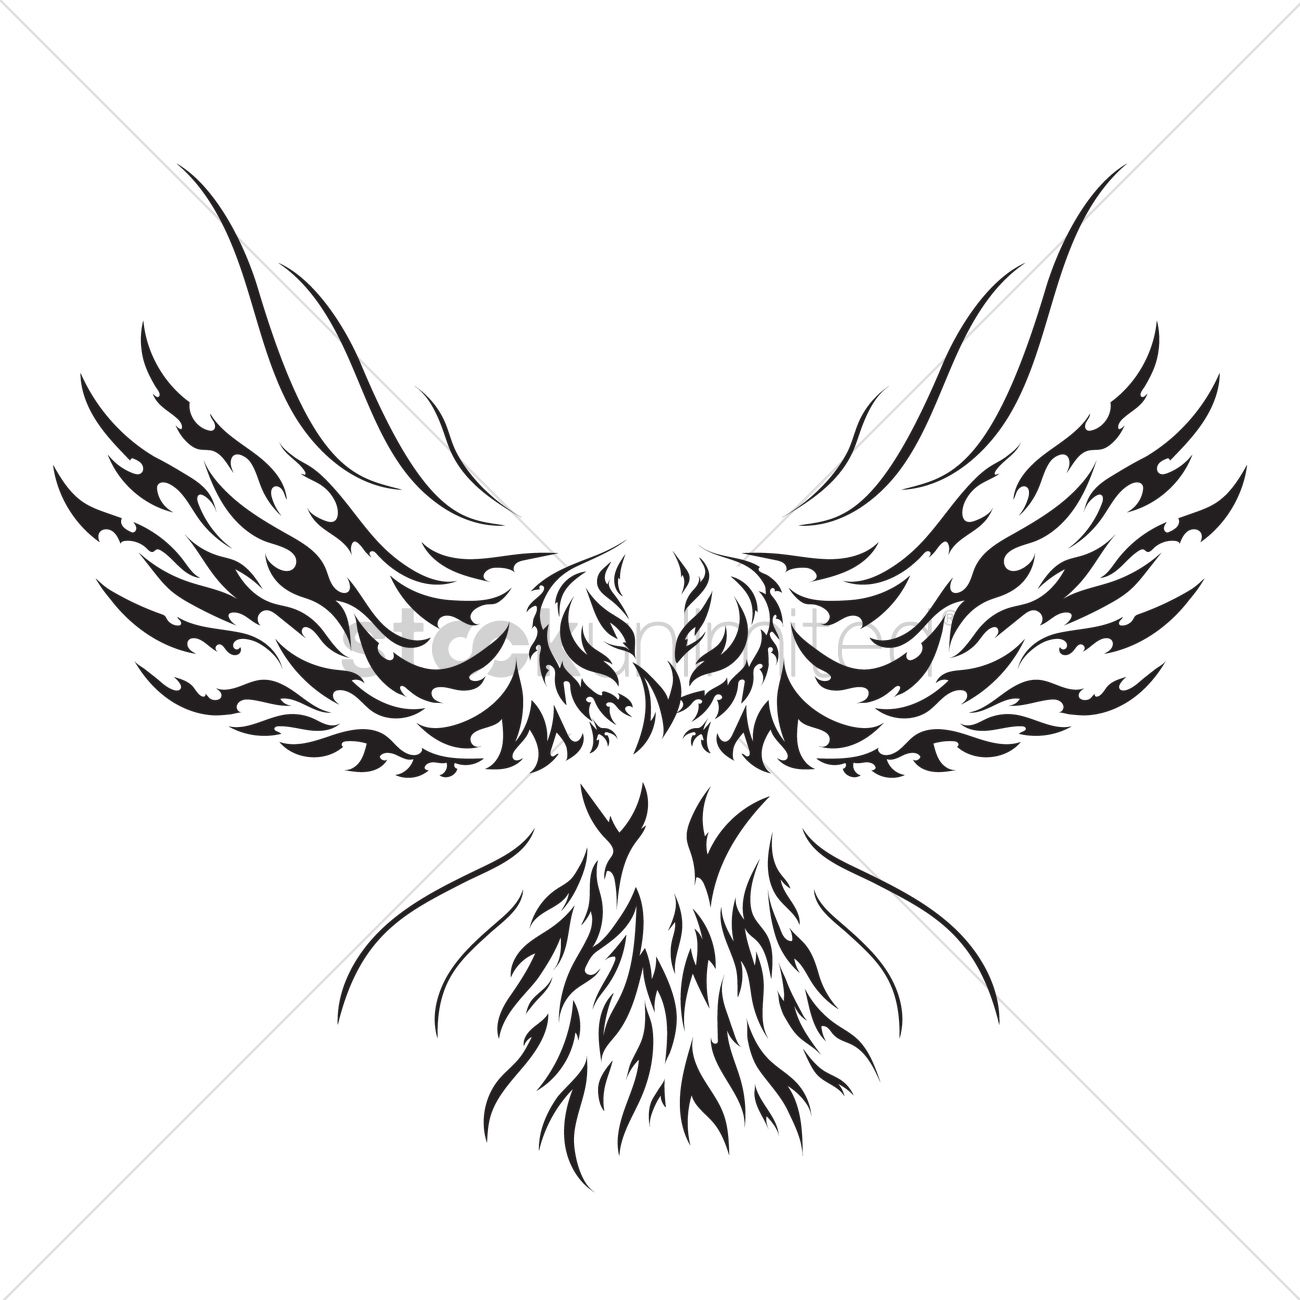 Eagle tattoo design Vector Image - 1434414 | StockUnlimited